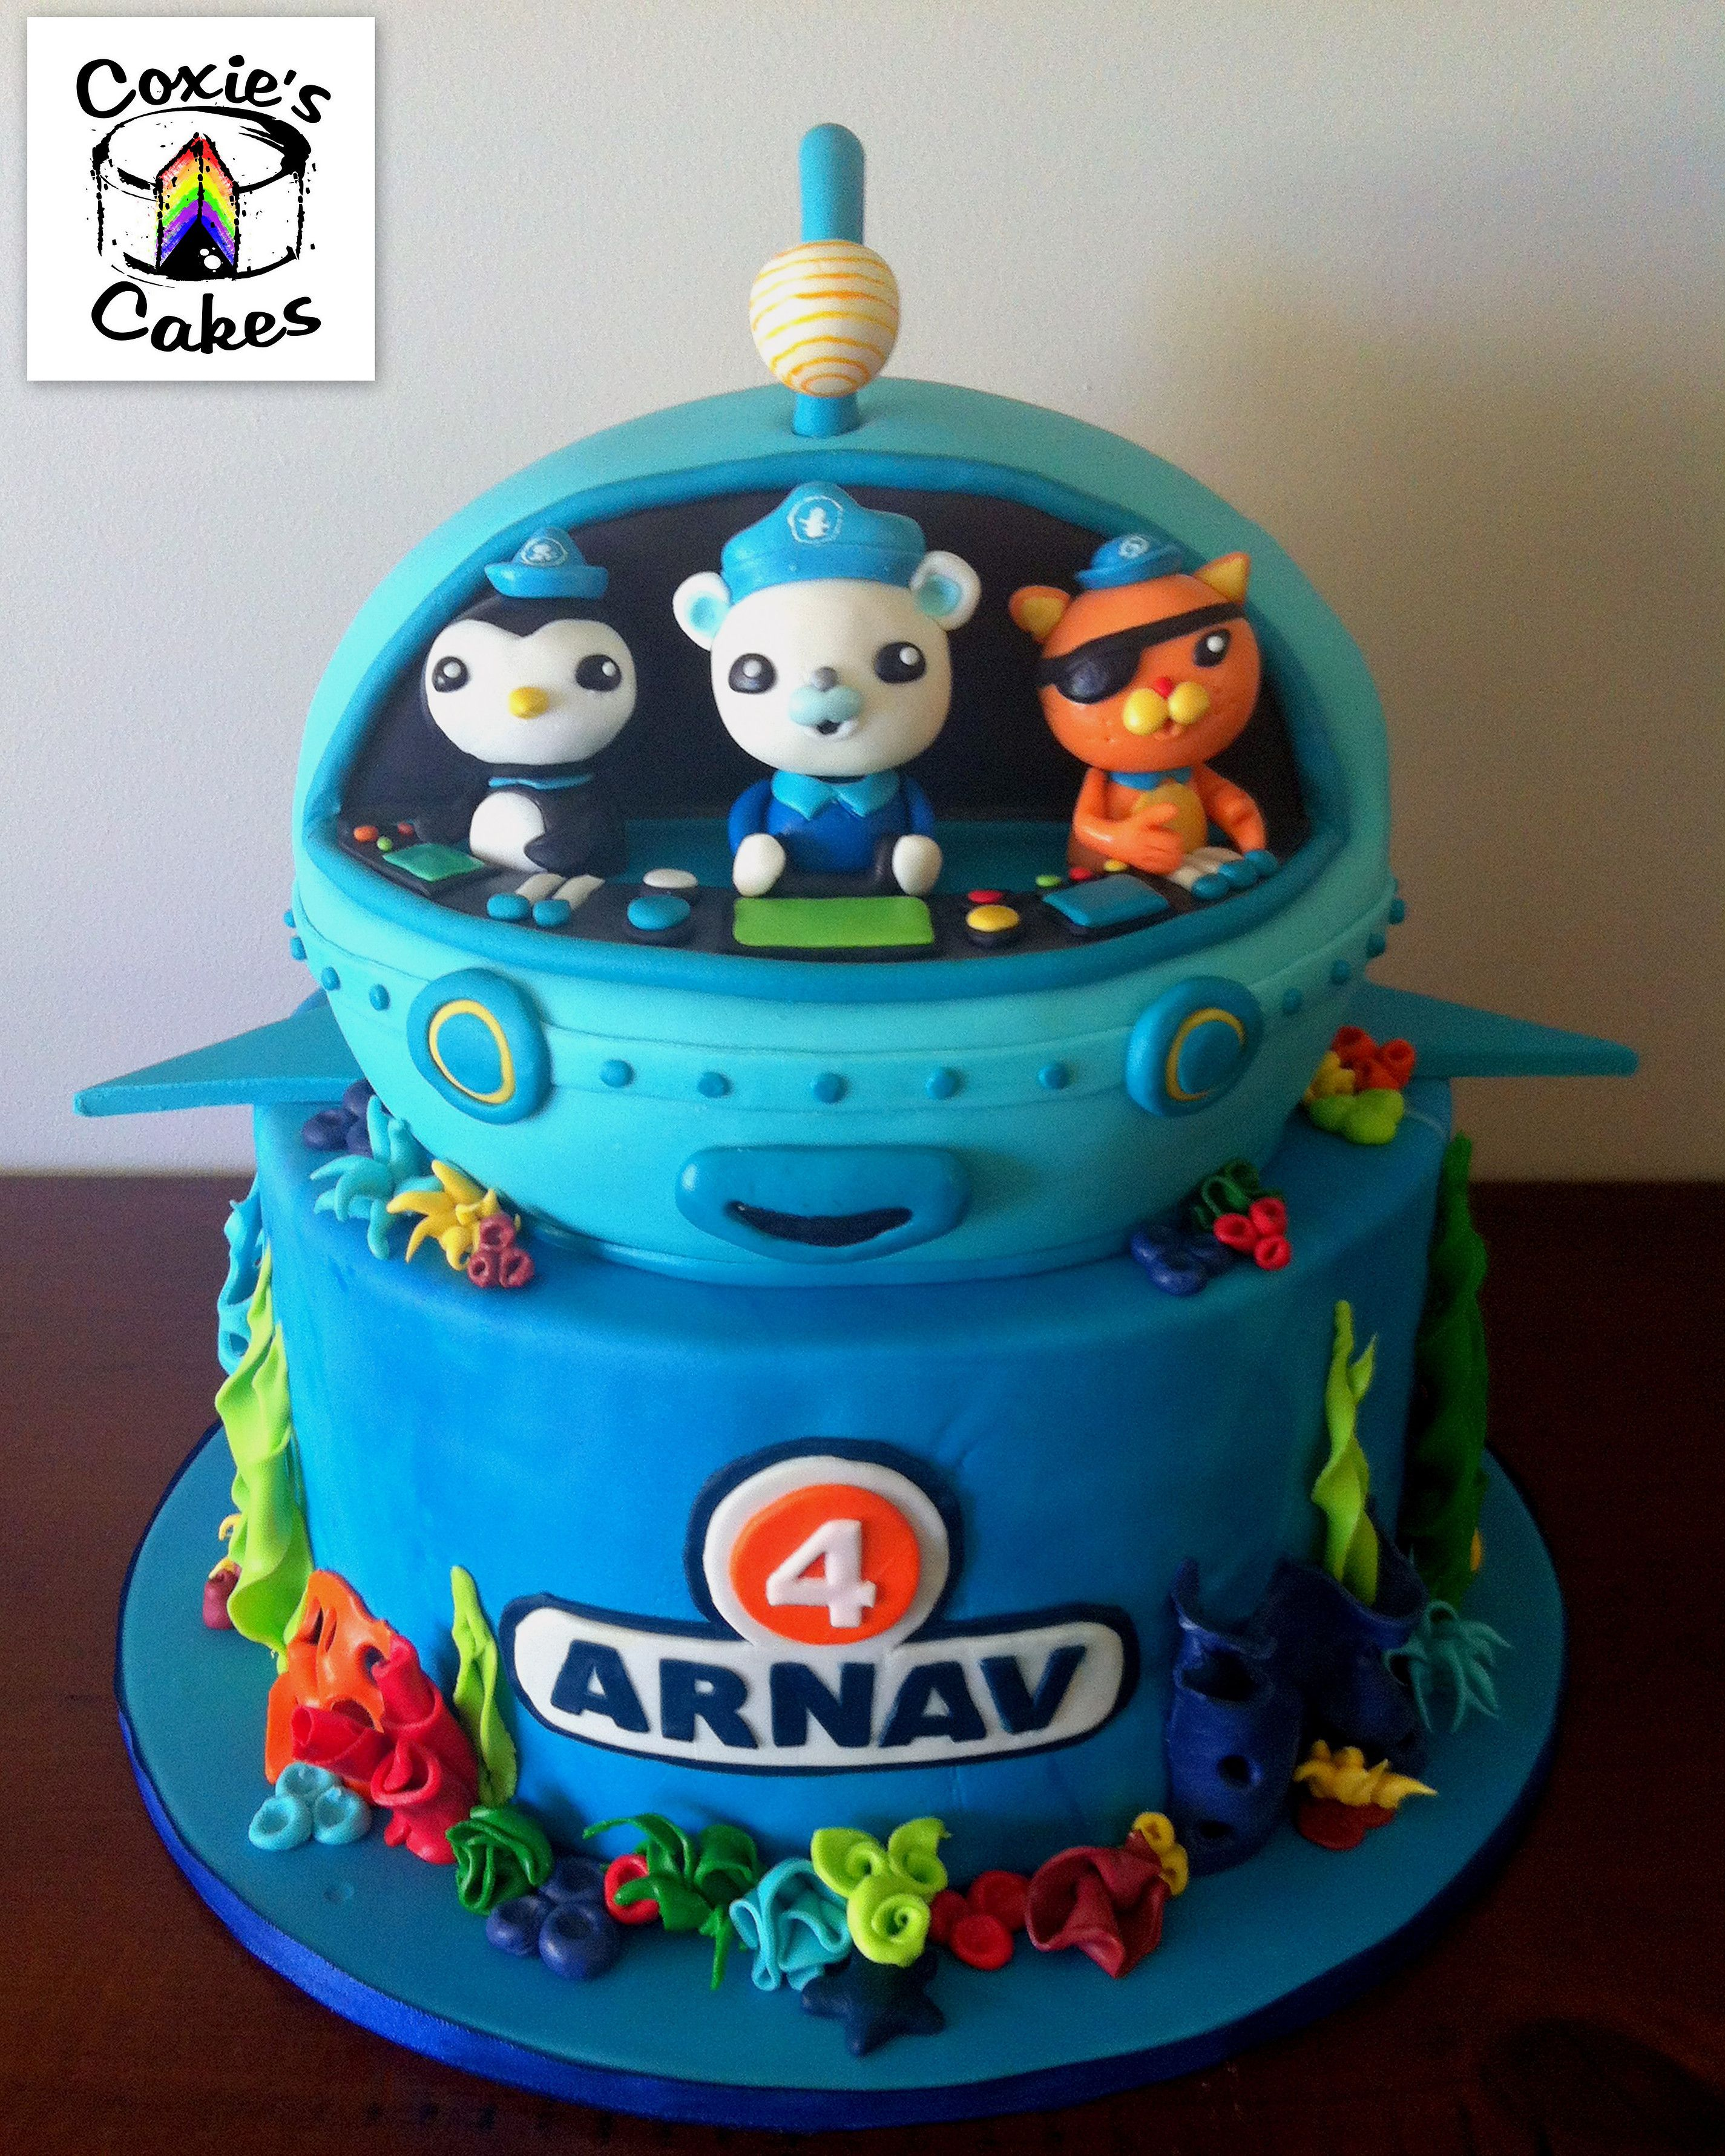 Coxies cakes perth cake decorator kids cakes to make your